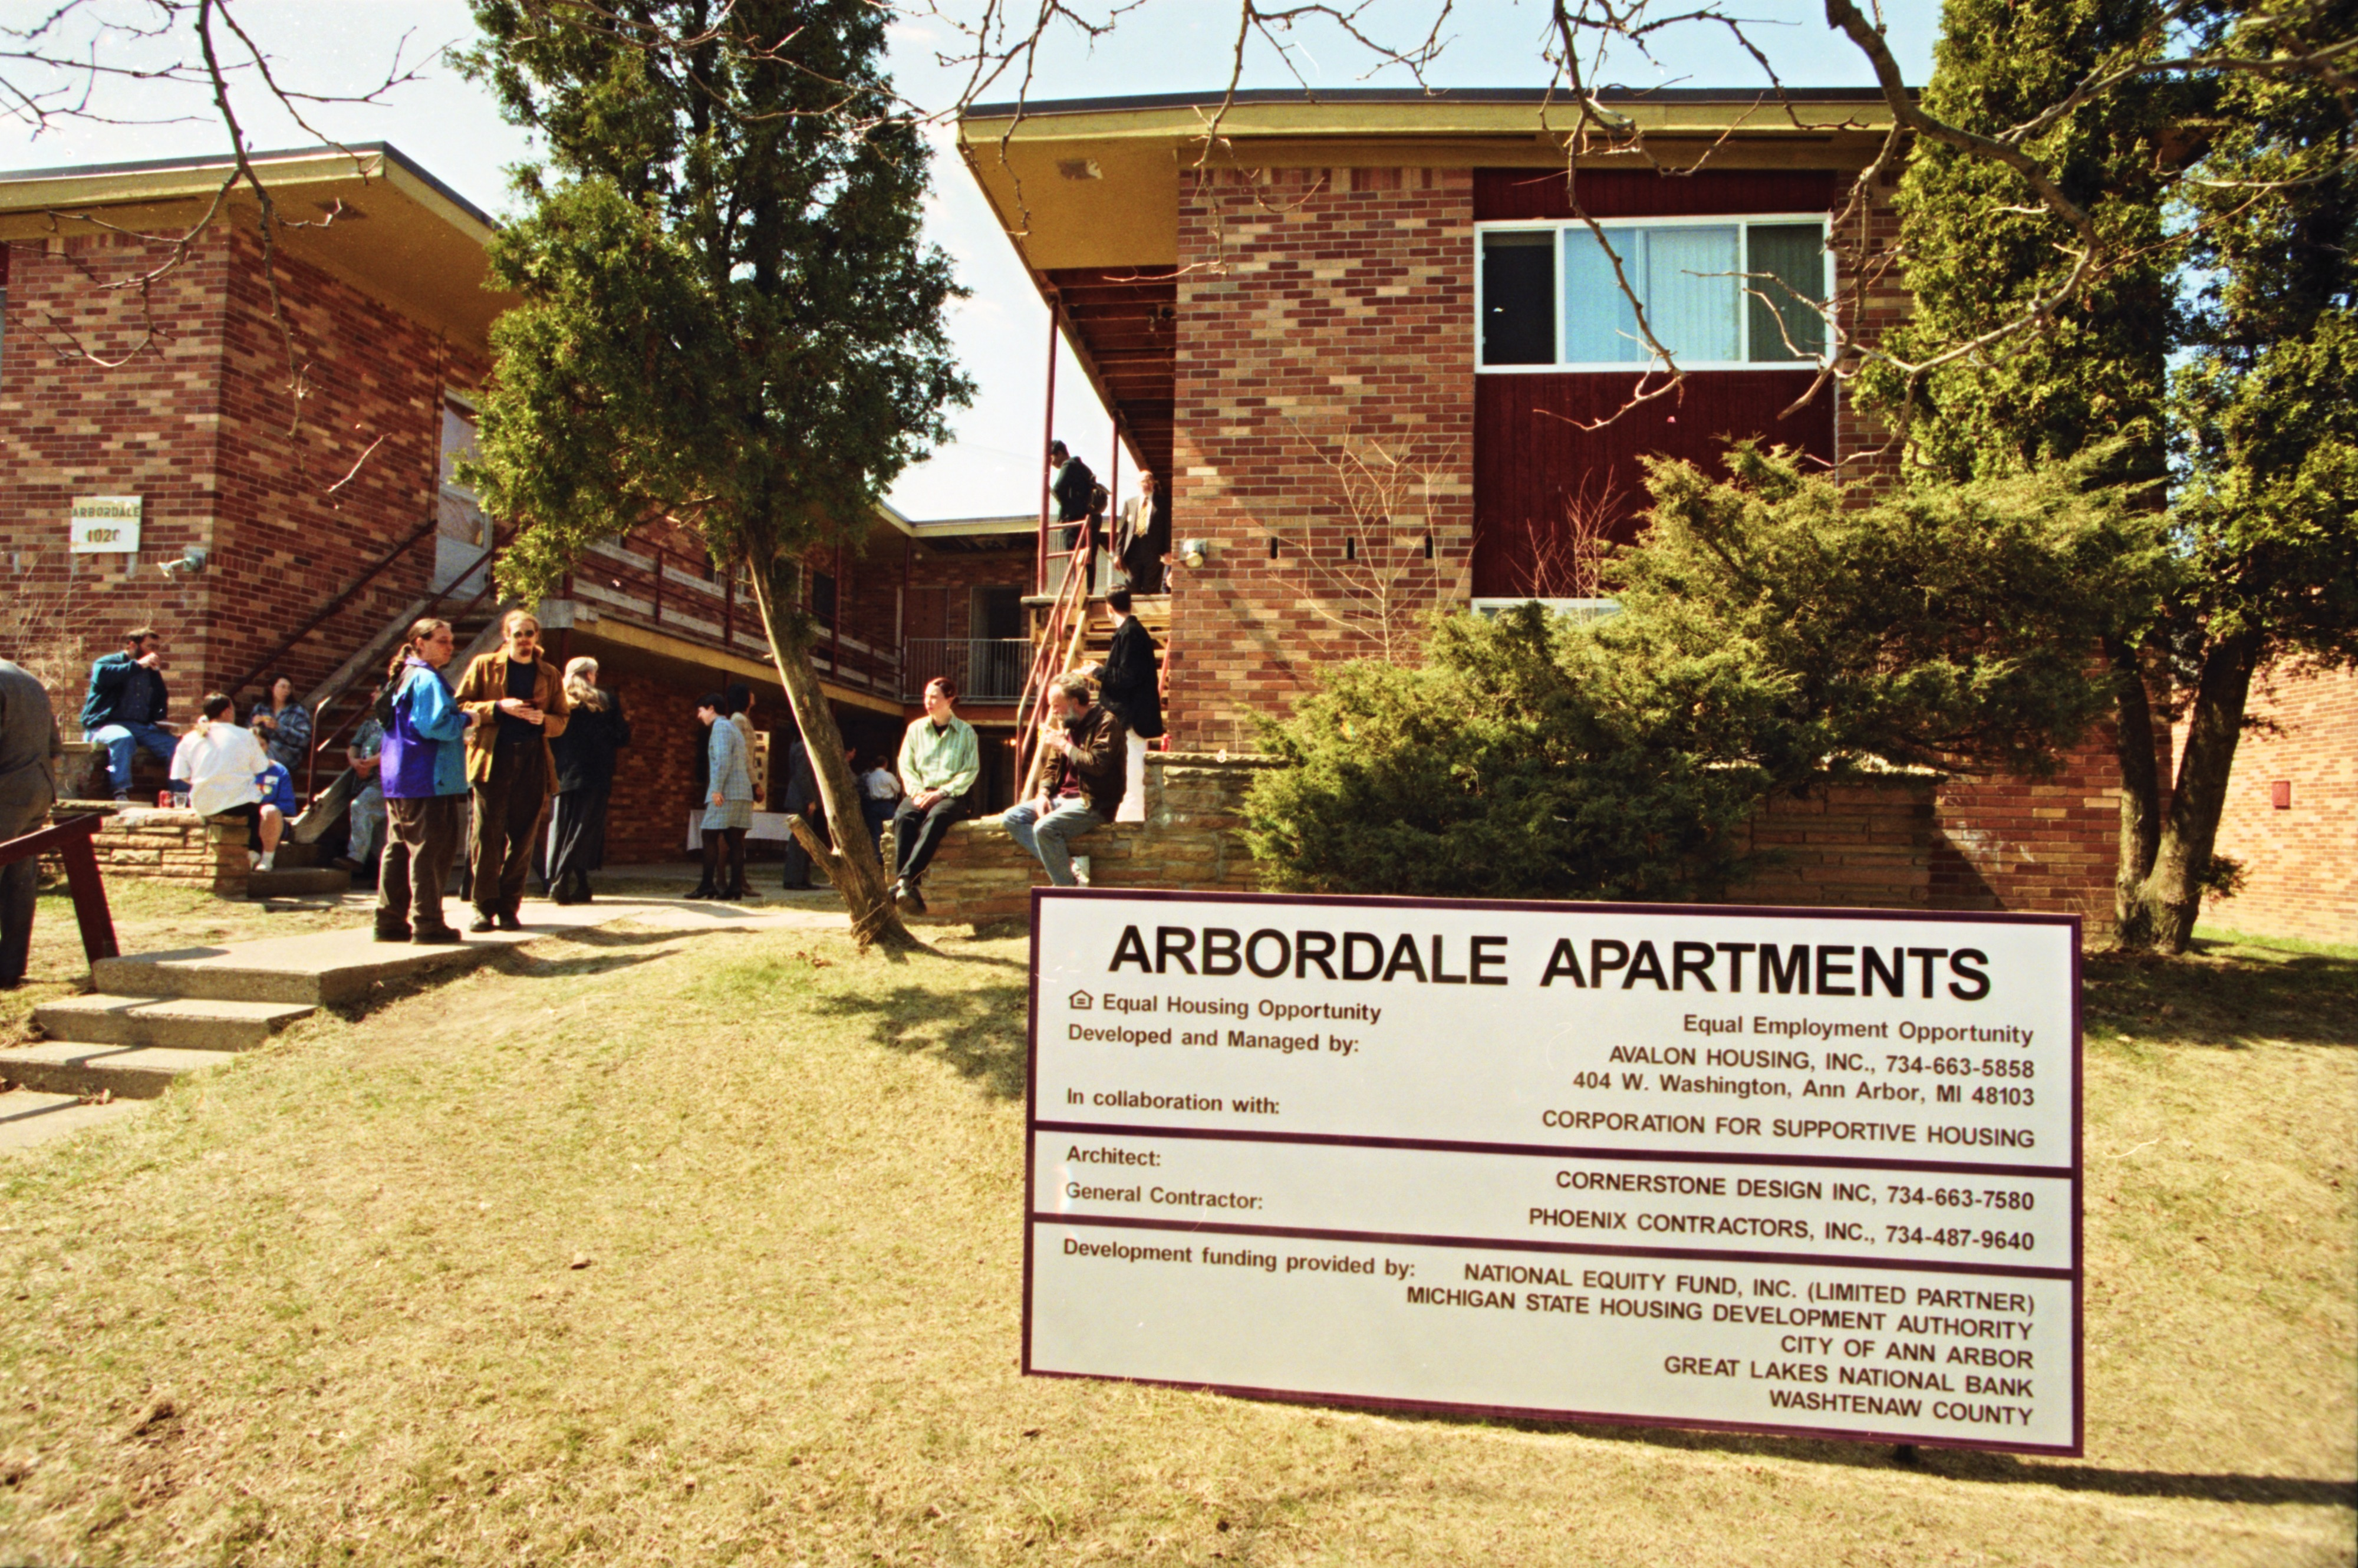 Open House at Arbordale Apartments Following Much-Needed Upgrades, March 1999 image